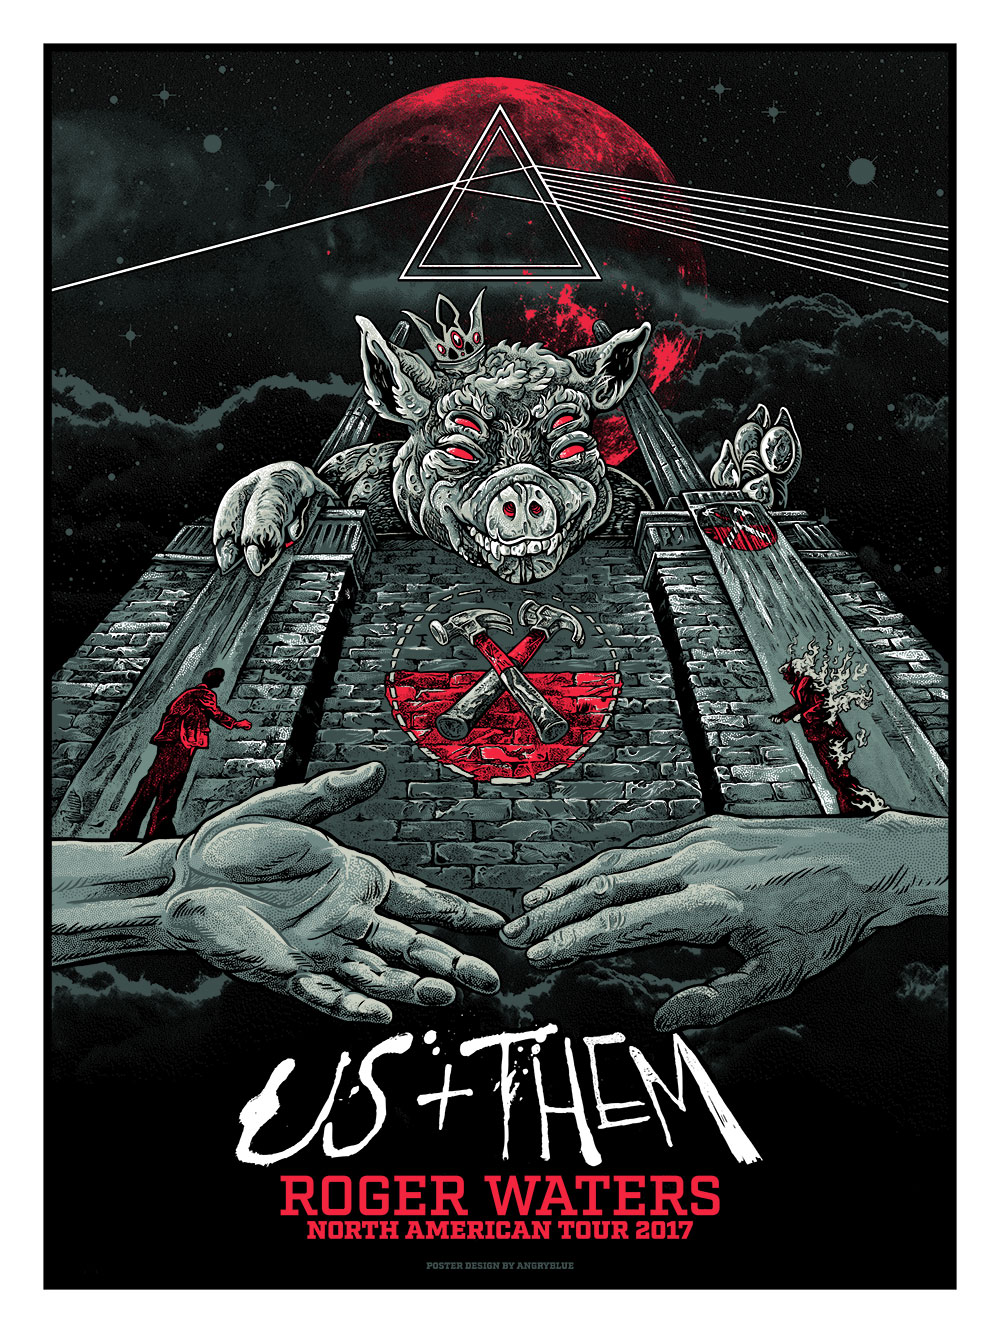 It was incredibly flattering to be asked to do the tour poster for the 2017 Roger Waters tour. It's a beautiful show and if you get the opportunity to check out one of the dates, treat yourself to an evening of a wonderful audio and visual experience. It might be the best concert I've attended. Having free reign has been something that's slowly being taken from artists in this poster world for some reason. Naturally, I had to get a final sign-off as it's merchandise for the tour, but I didn't feel like I had anyone lording over my shoulders. The only direction I was given was to keep with the tour through line of referencing the 'Animals' cover. So, I started with Battersea Power Station and thought a giant snarling pig lording over the edge would be a fun dynamic take. After that, I started peppering in some references to other albums that would have selections played from throughout the show. My artist proofs will be available: Friday (12pm est) 6.23.17 The original ink drawing is available for purchase. The pencils have sold. Email me if interested.